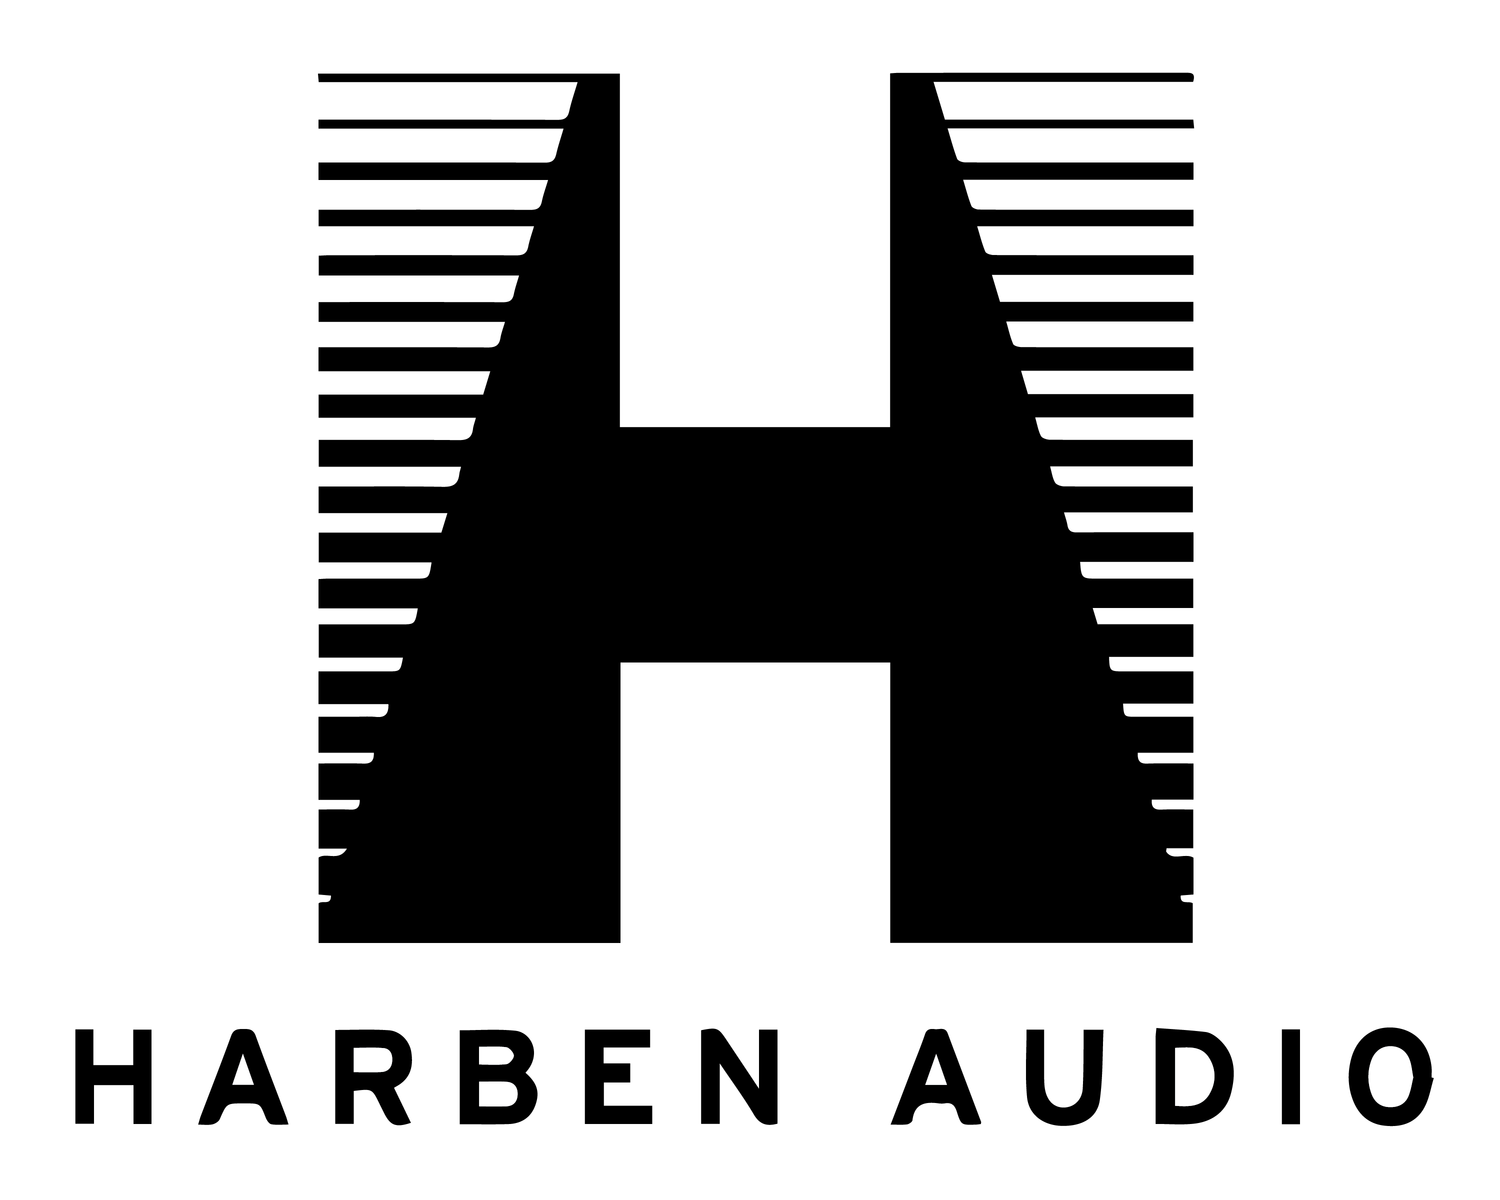 Harben Audio